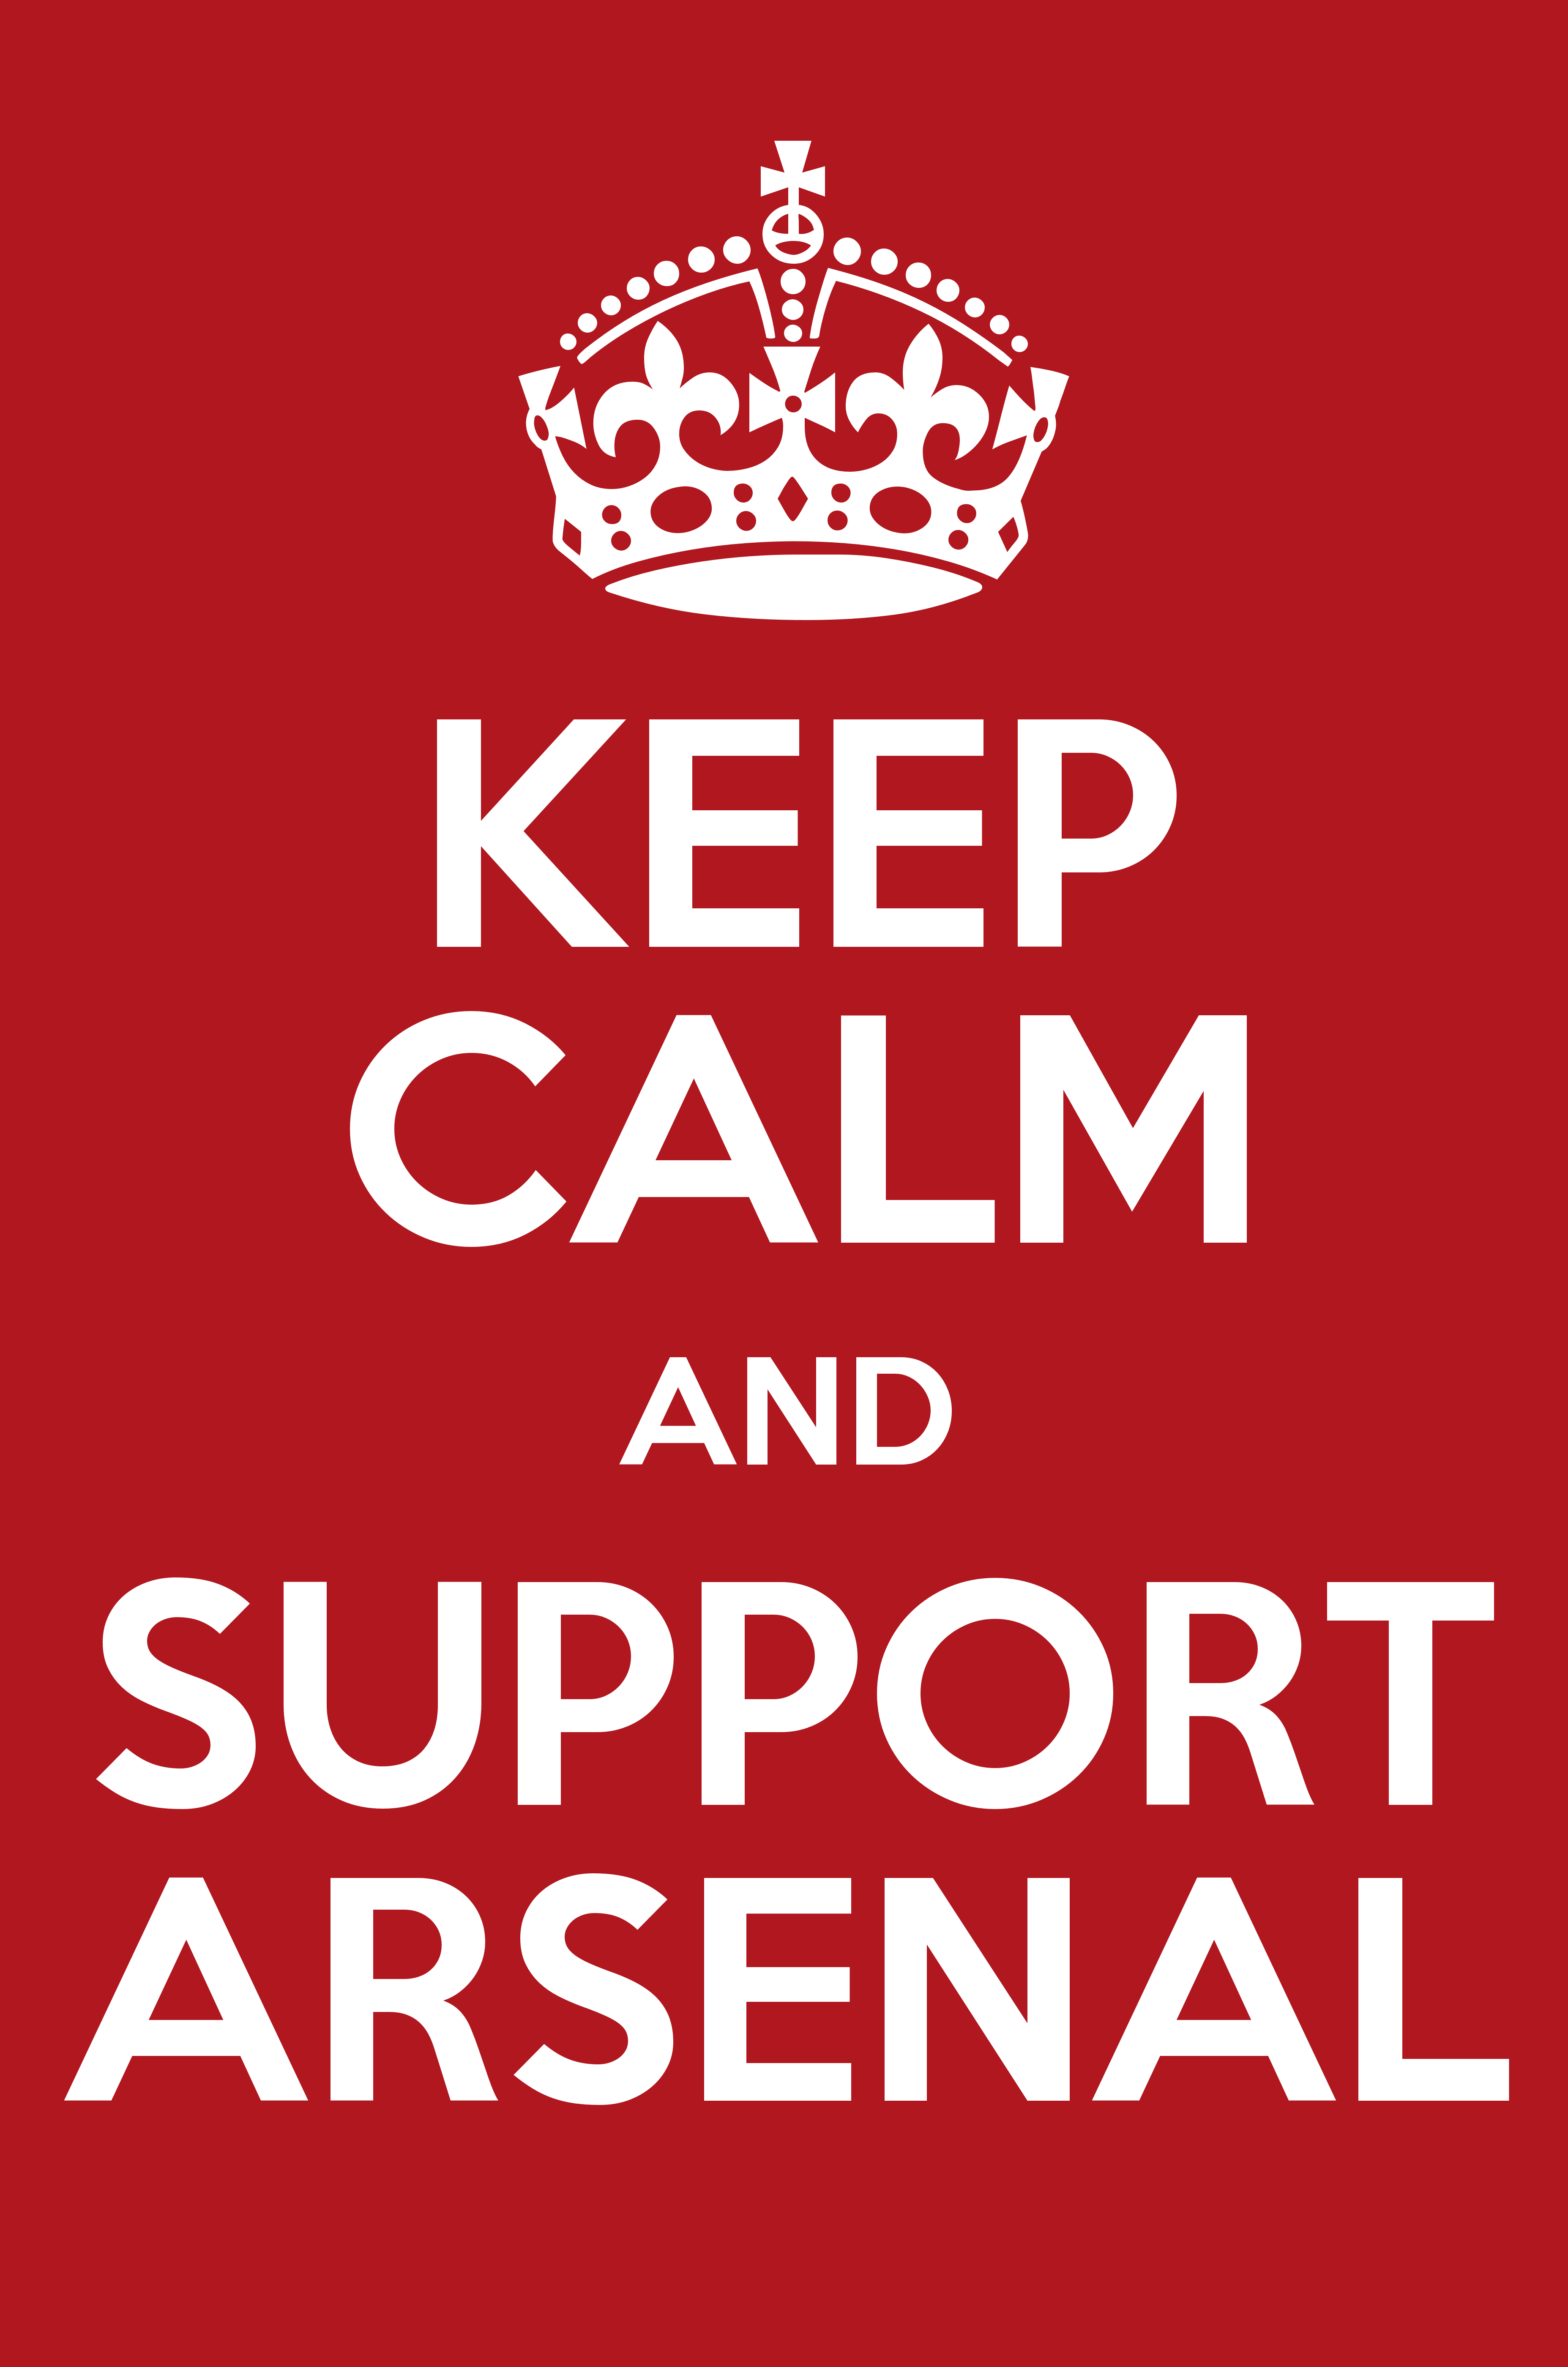 Keep calm and support arsenal keep calm and posters generator keep calm and support arsenal poster pronofoot35fo Gallery